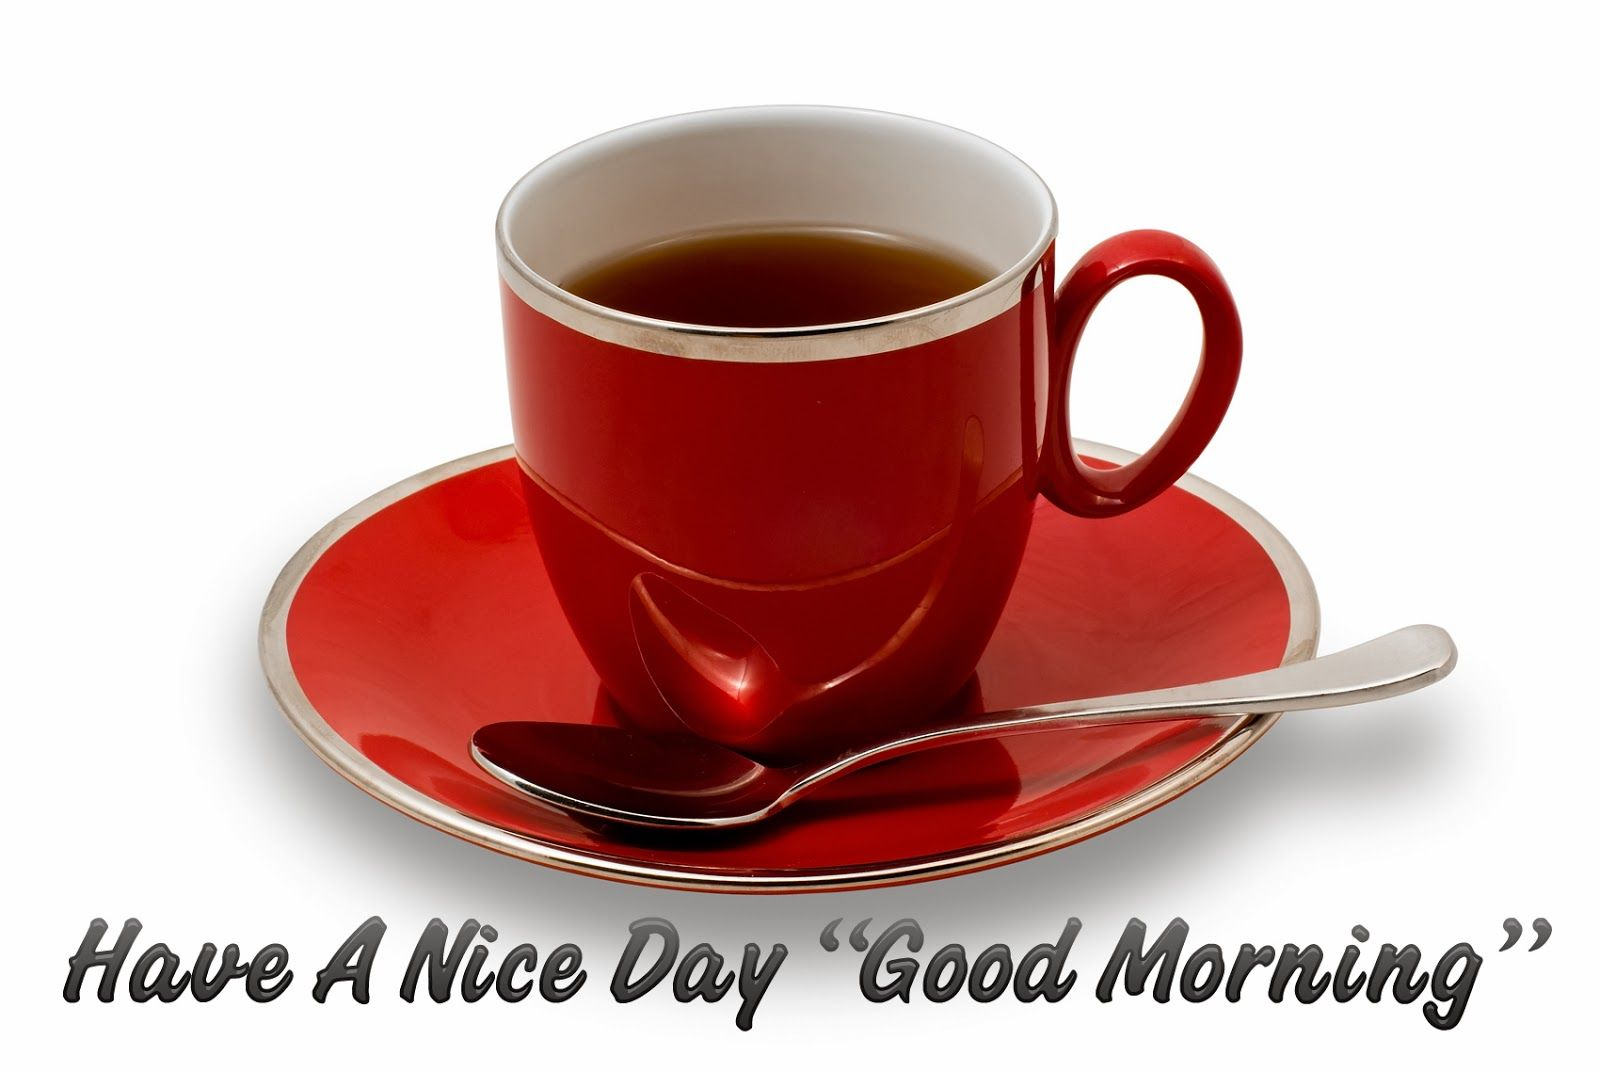 Good Morning Text And Wallpapers Free Download | Wishes U0026 Greetings